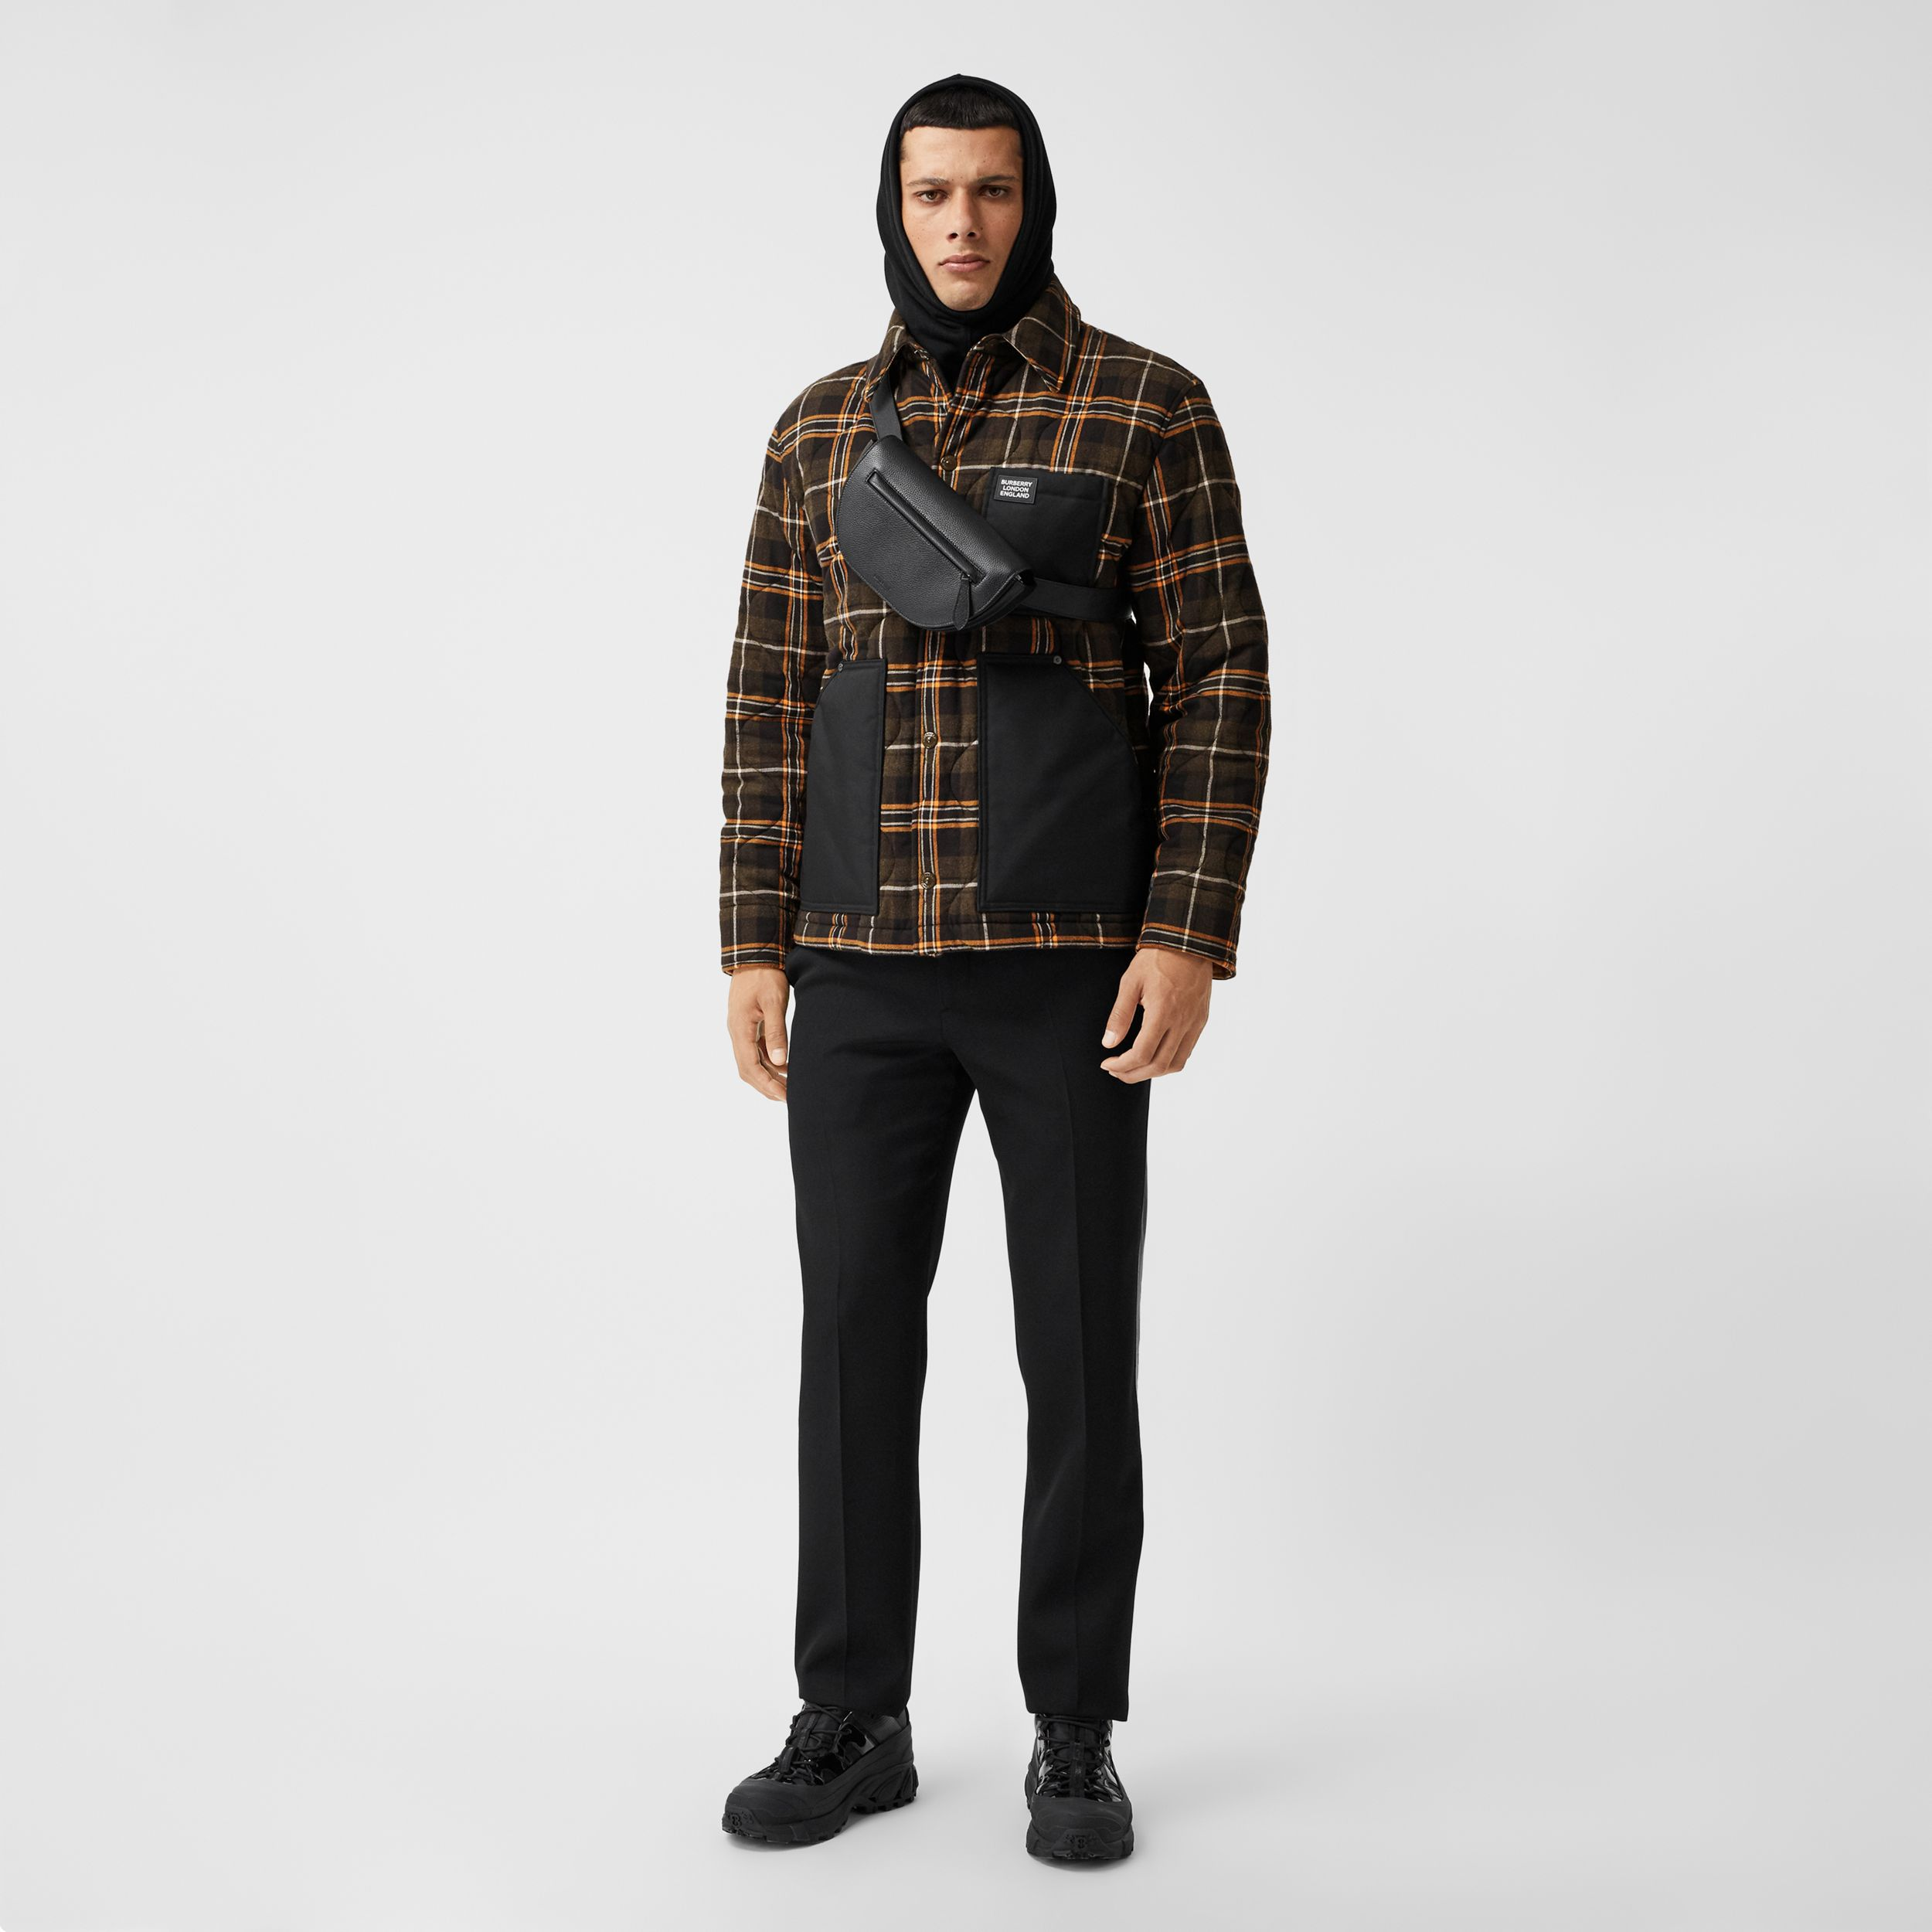 Contrast Pocket Check Cotton Flannel Overshirt in Olive - Men | Burberry - 1